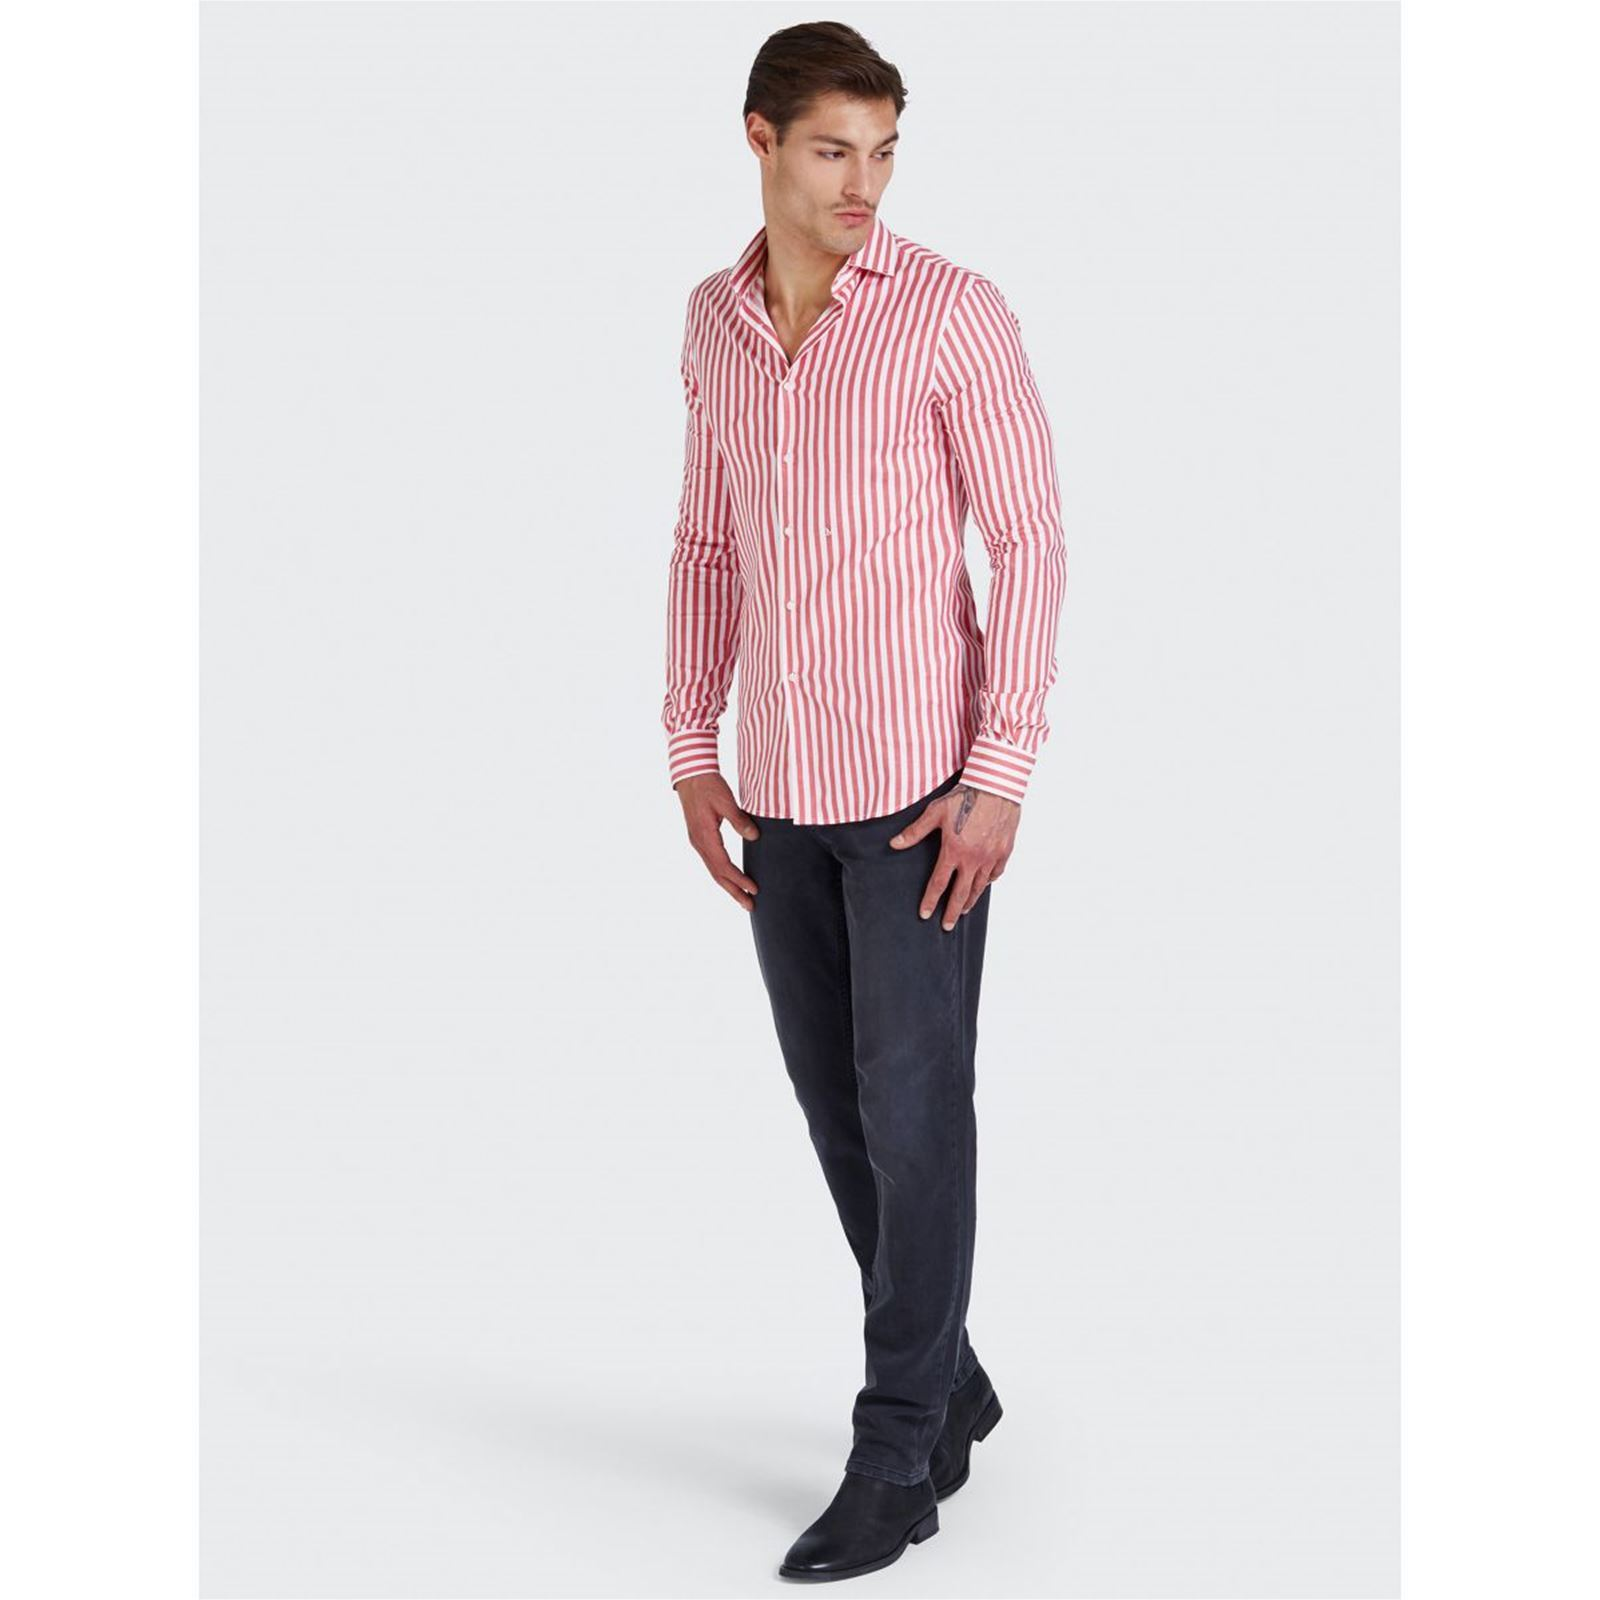 V Angeles Los Homme SlimRouge Marciano Chemise rsQBthCxd